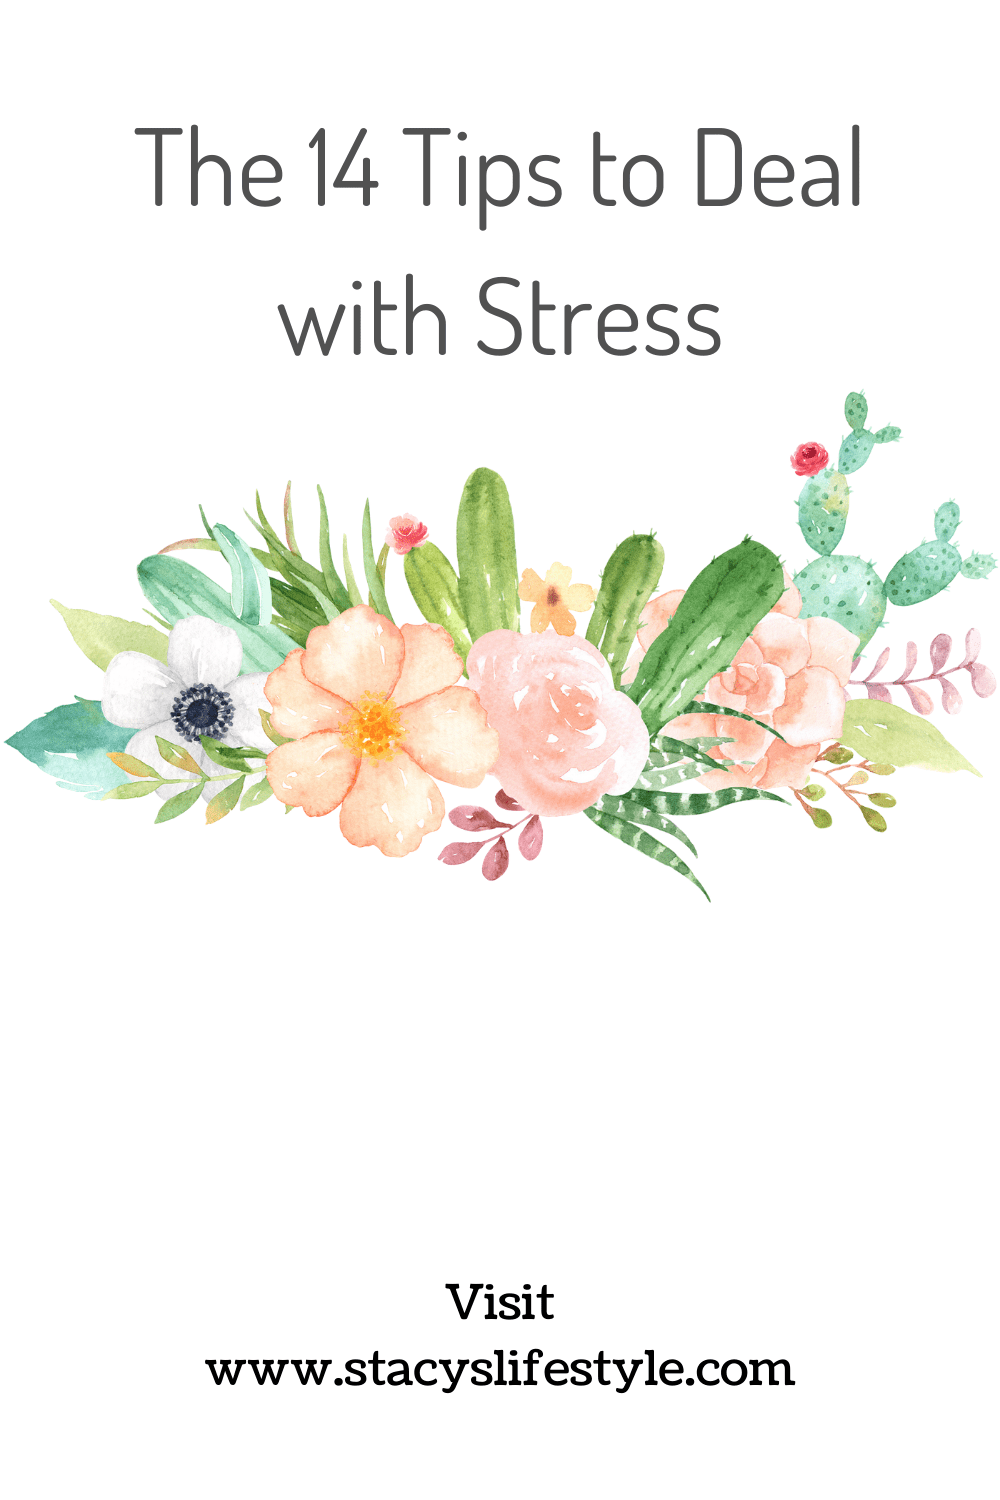 The 14 Tips to Deal with Stress